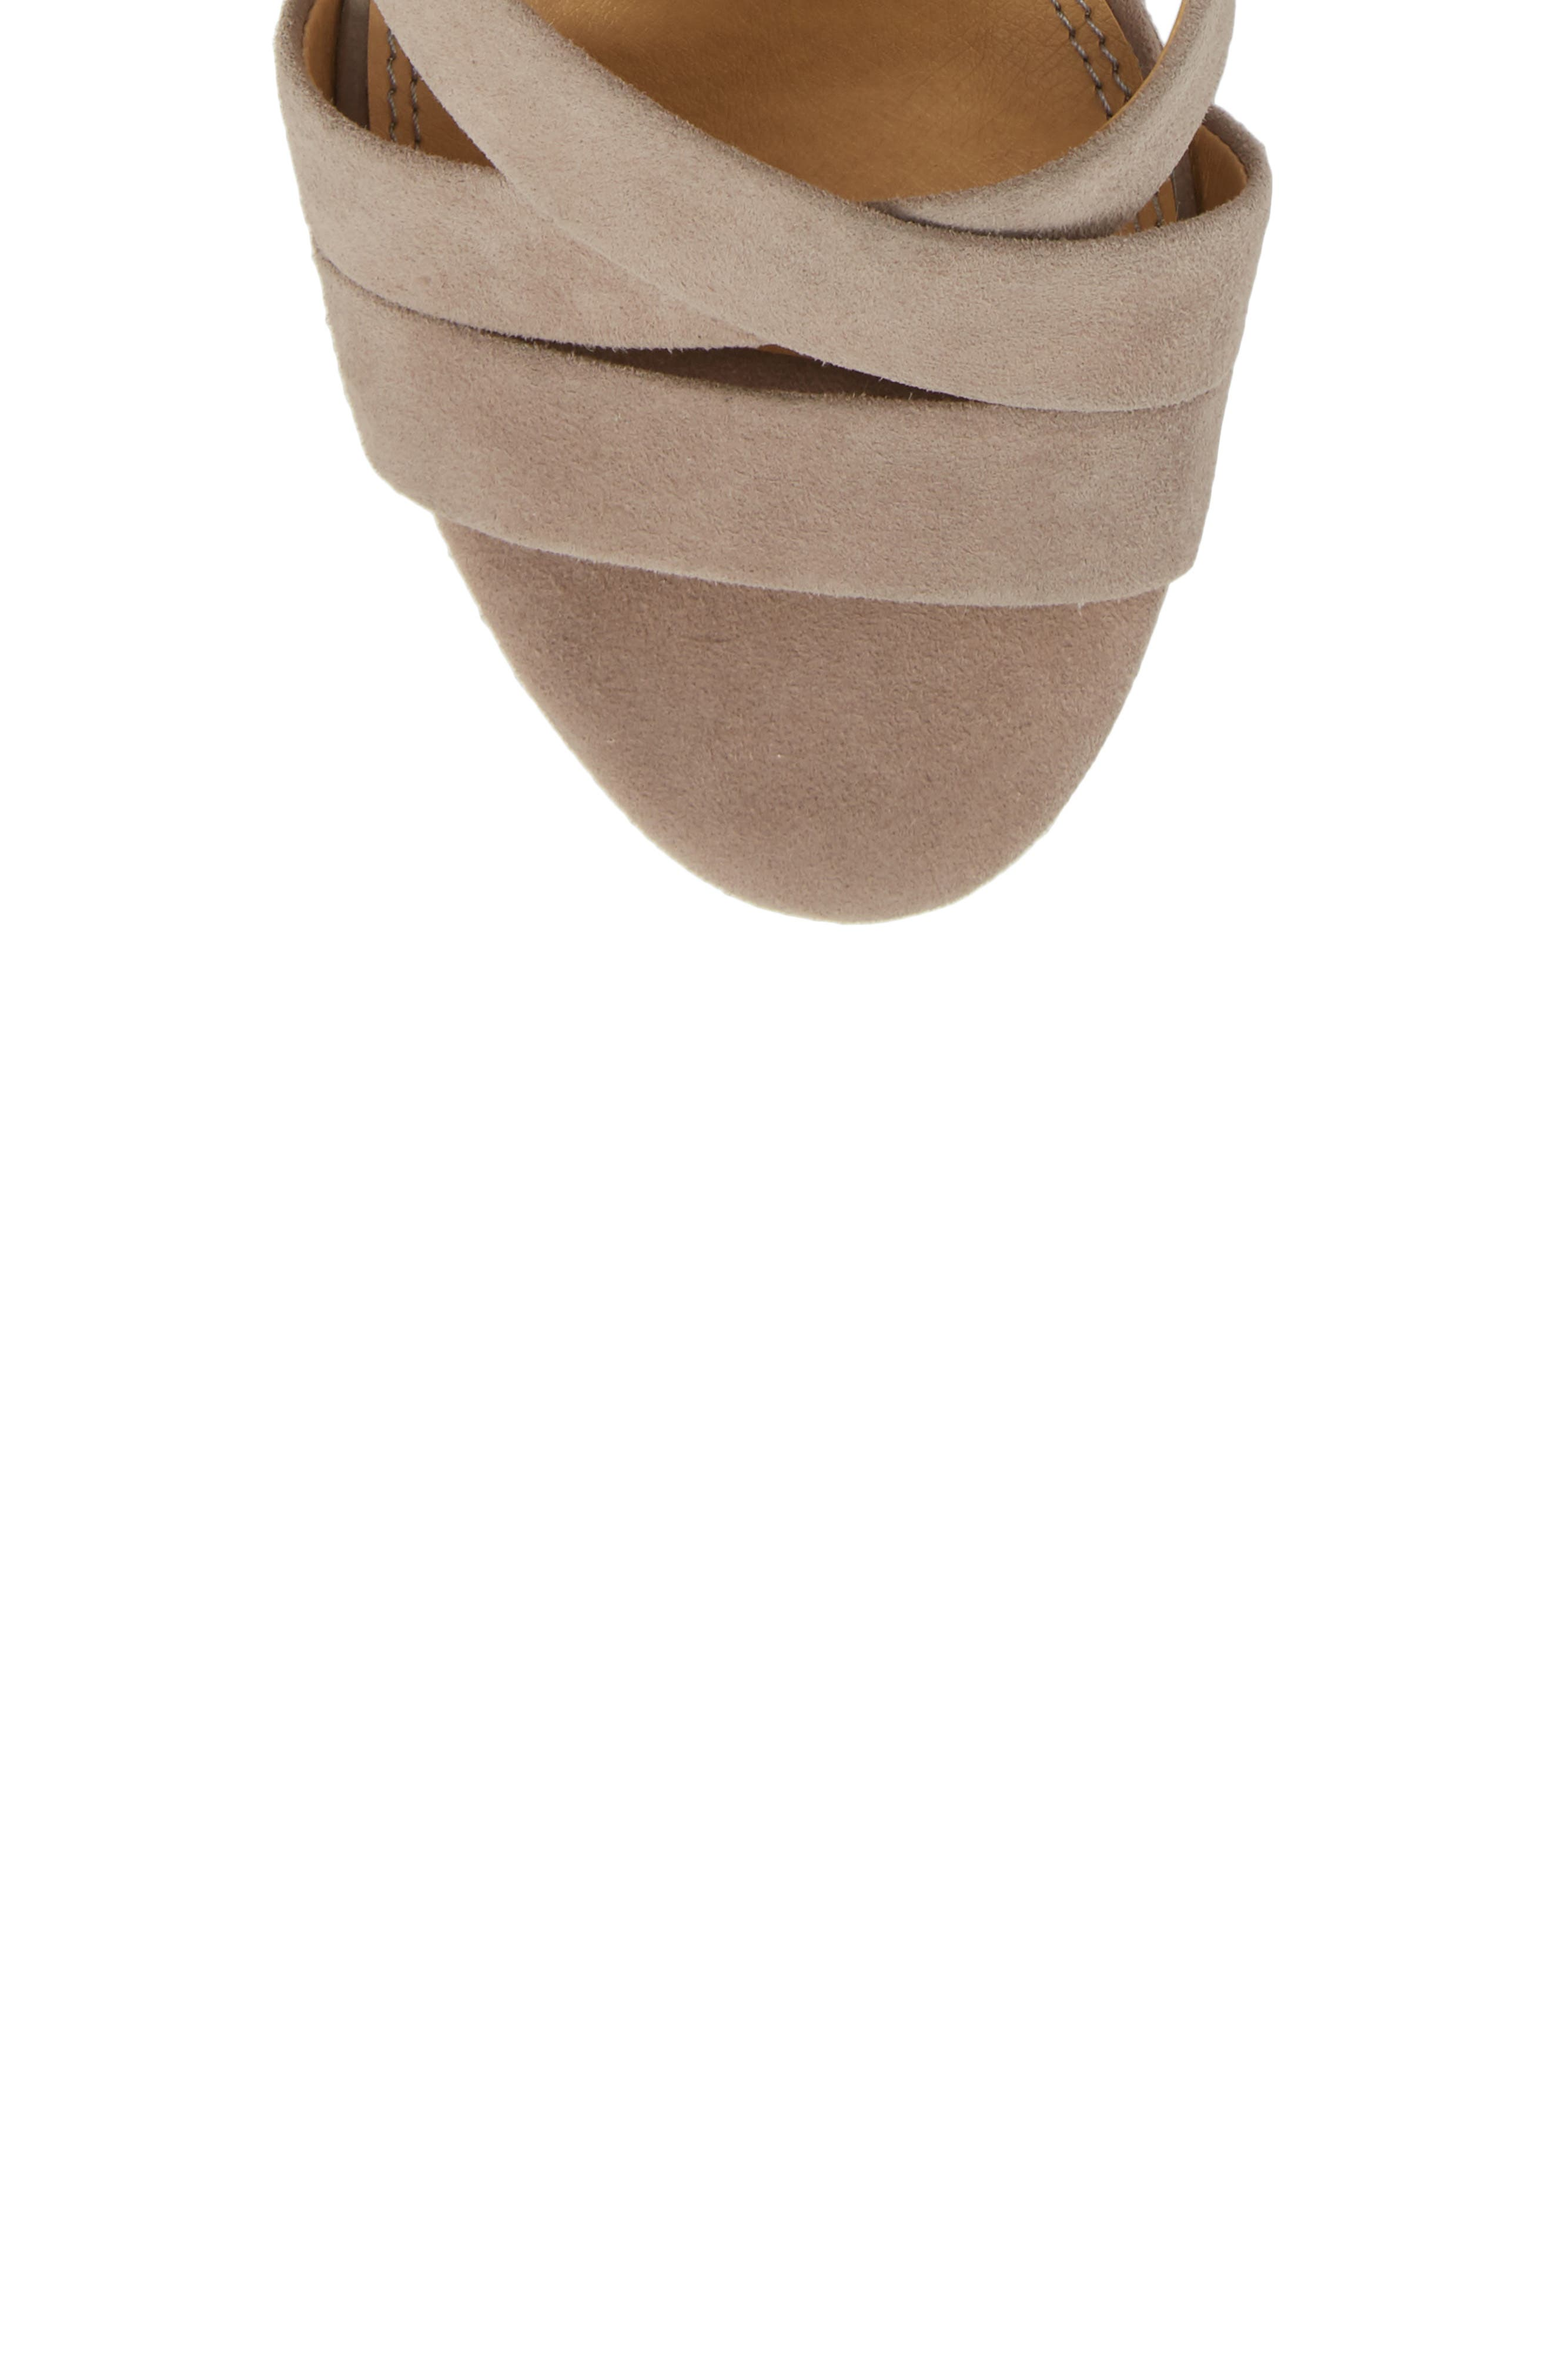 Fergie Lace-Up Sandal,                             Alternate thumbnail 4, color,                             Taupe Suede